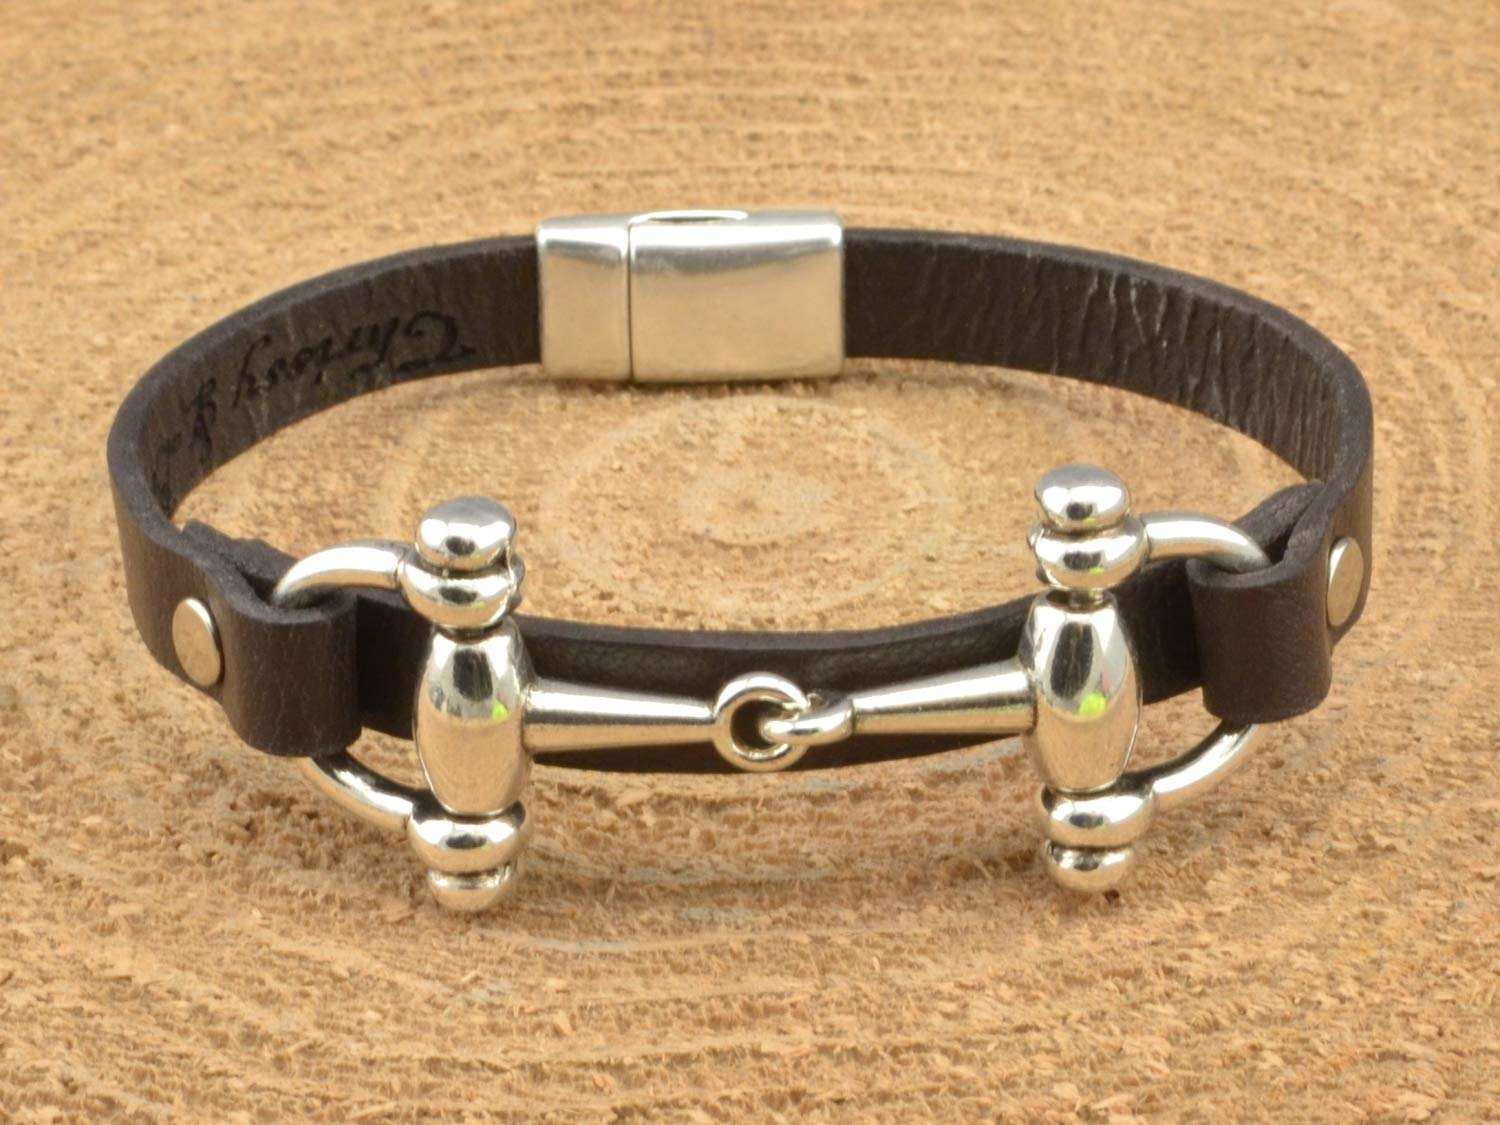 equestrian jewelry horse rider gift snaffle bit bracelet horseman horsewoman jewelry horse bit bracelet cowboy cowgirl jewelry